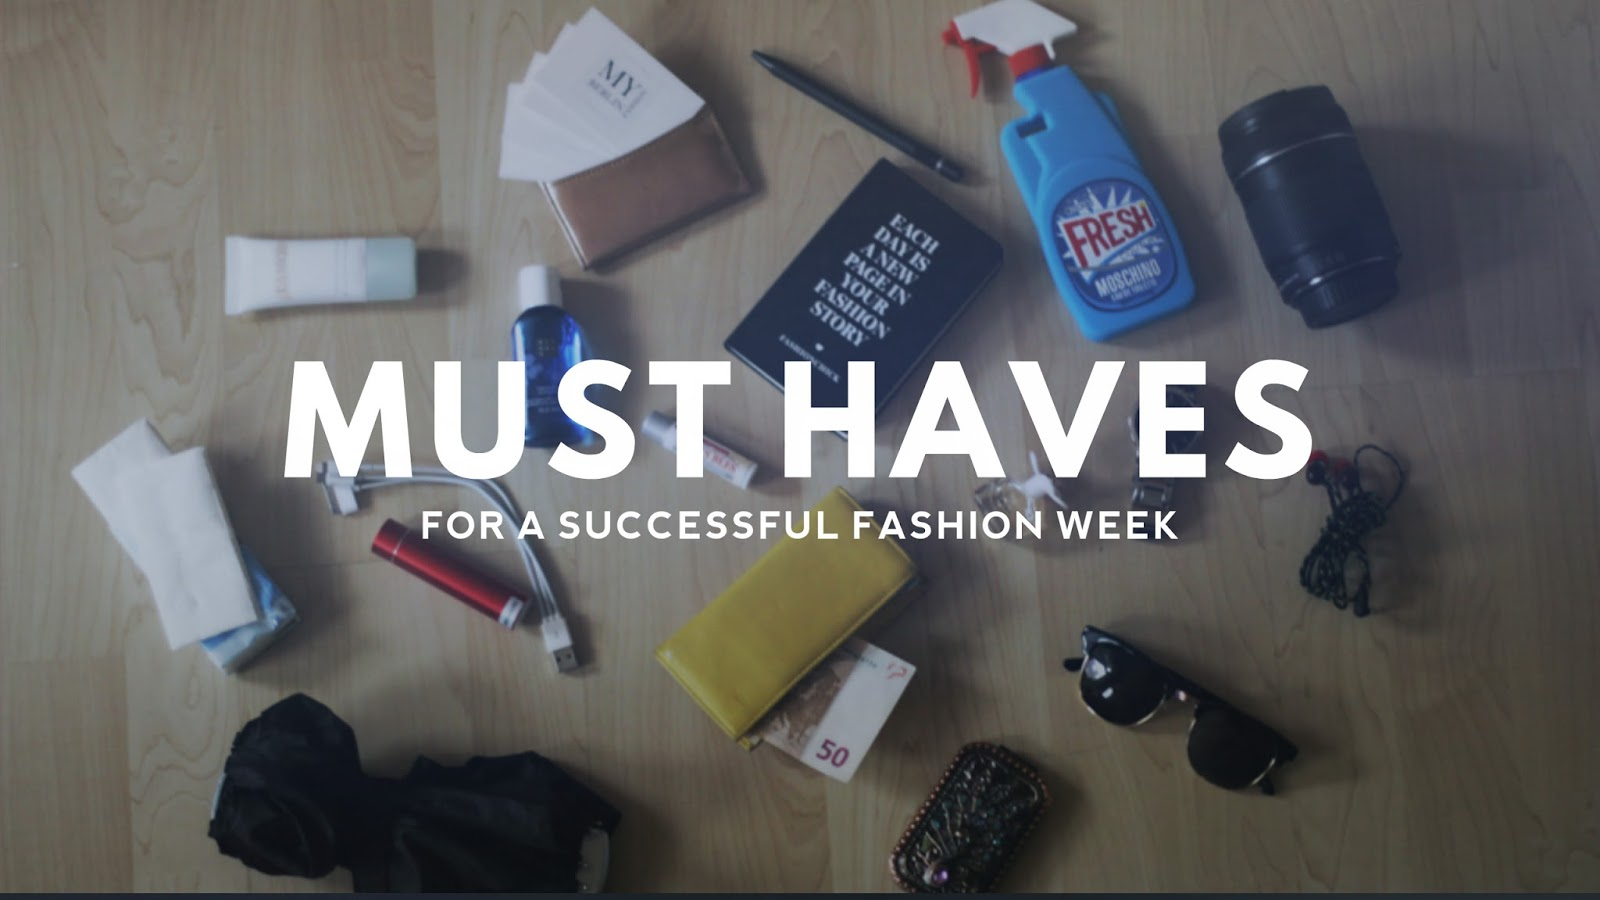 must haves fashion week photo diary